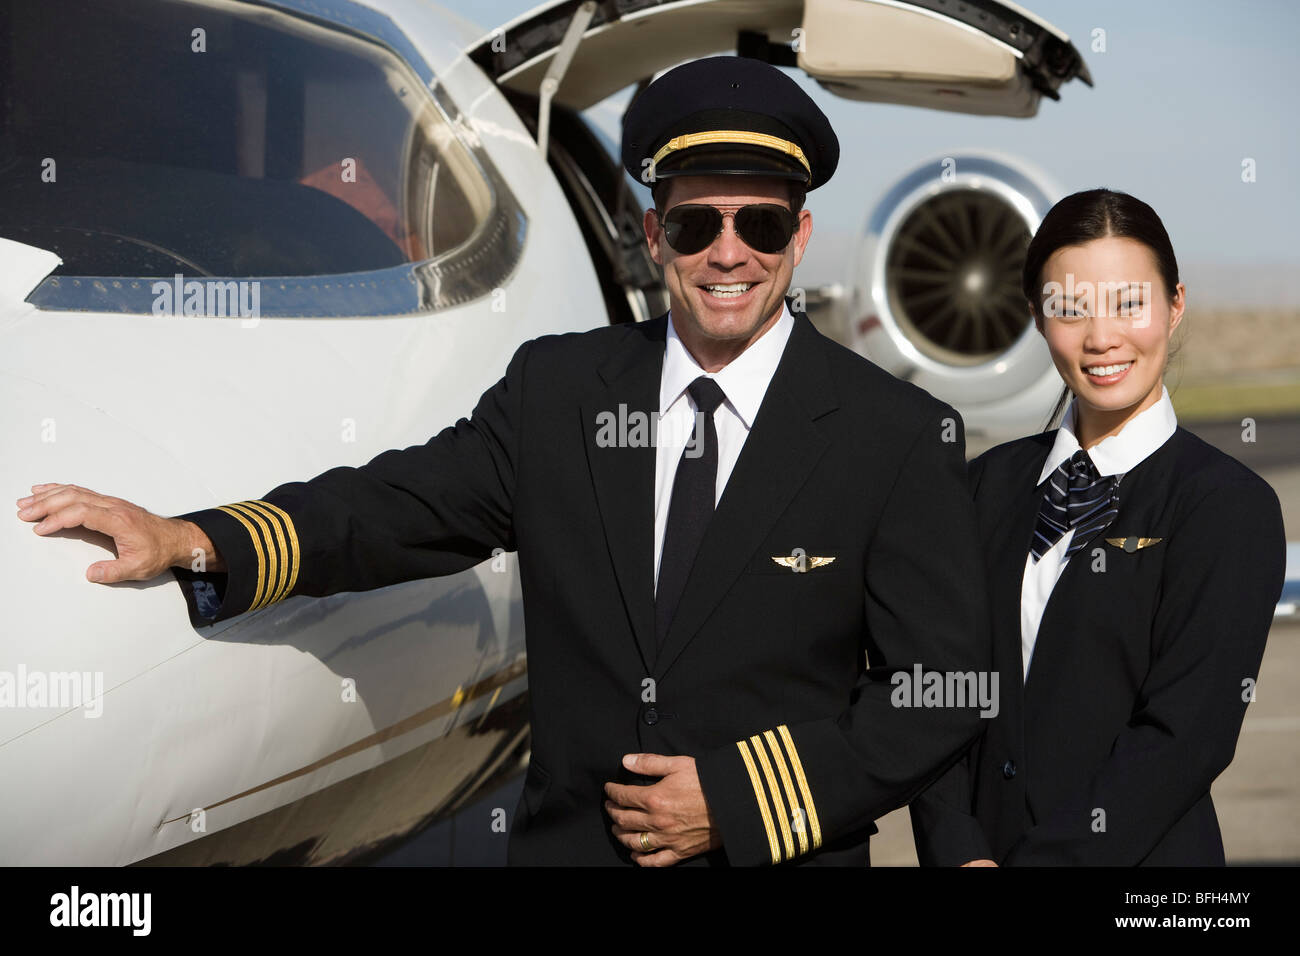 Portrait of mid-adult airline pilot and flight attendant in